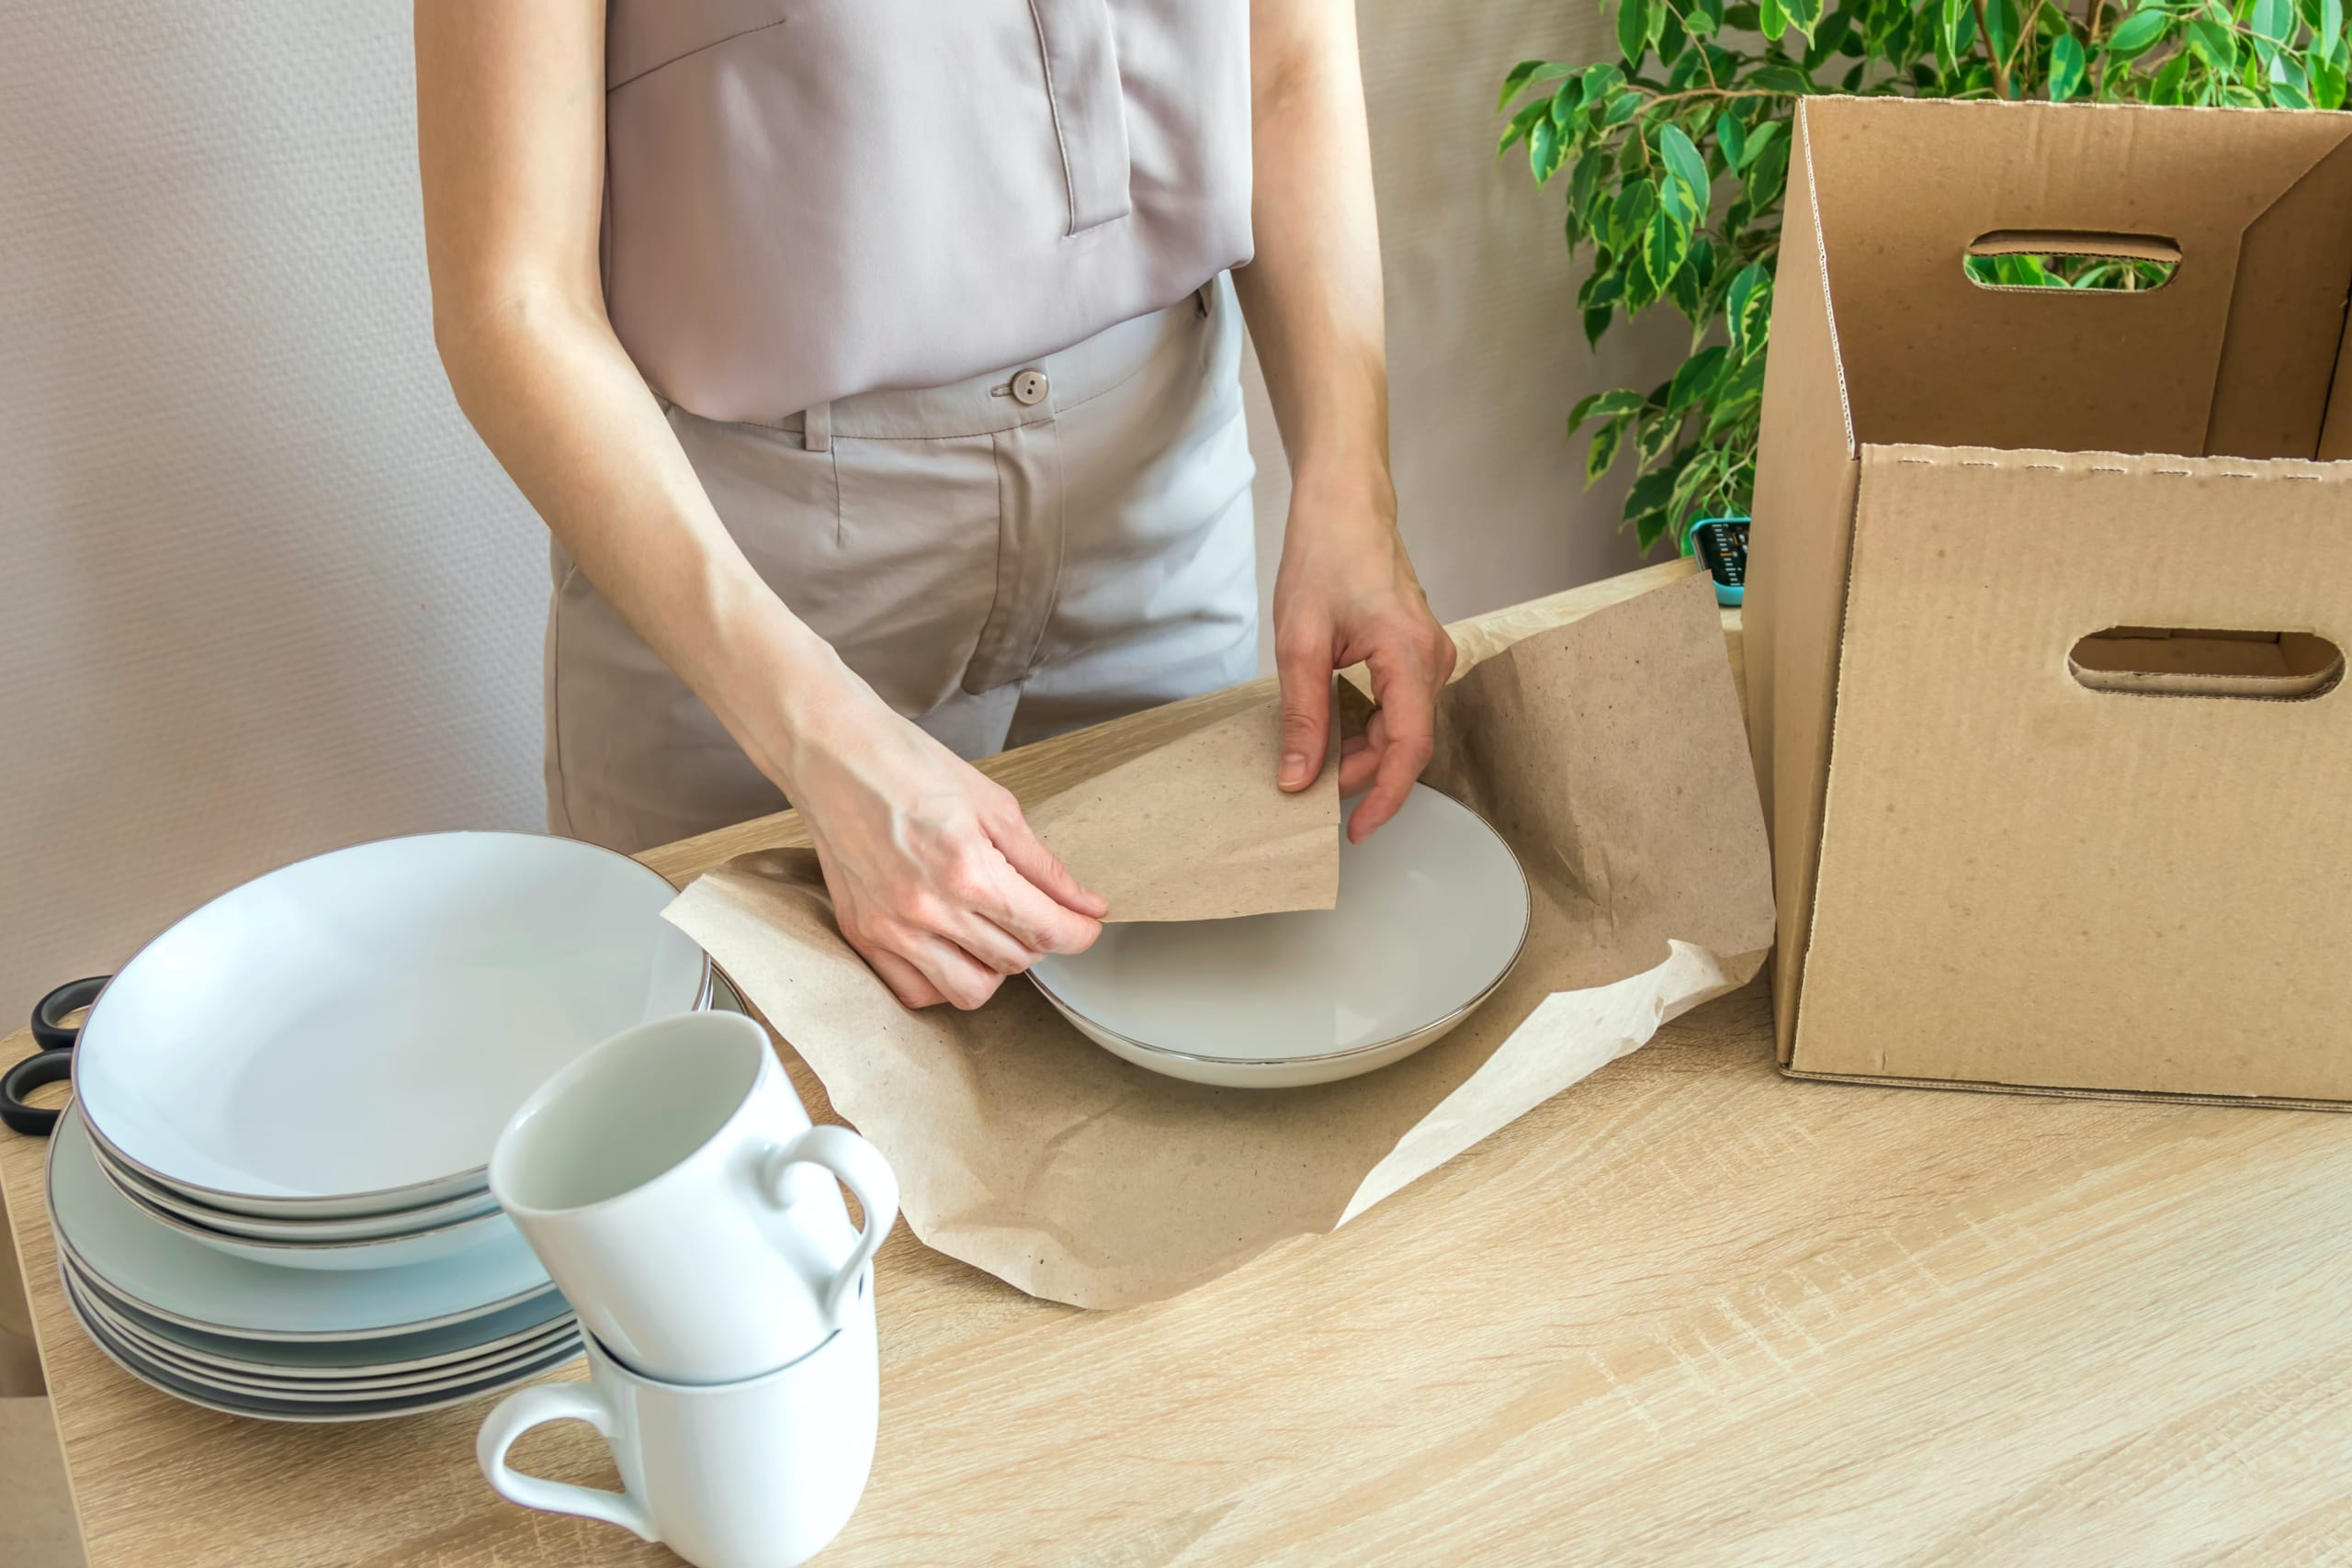 packing dishes